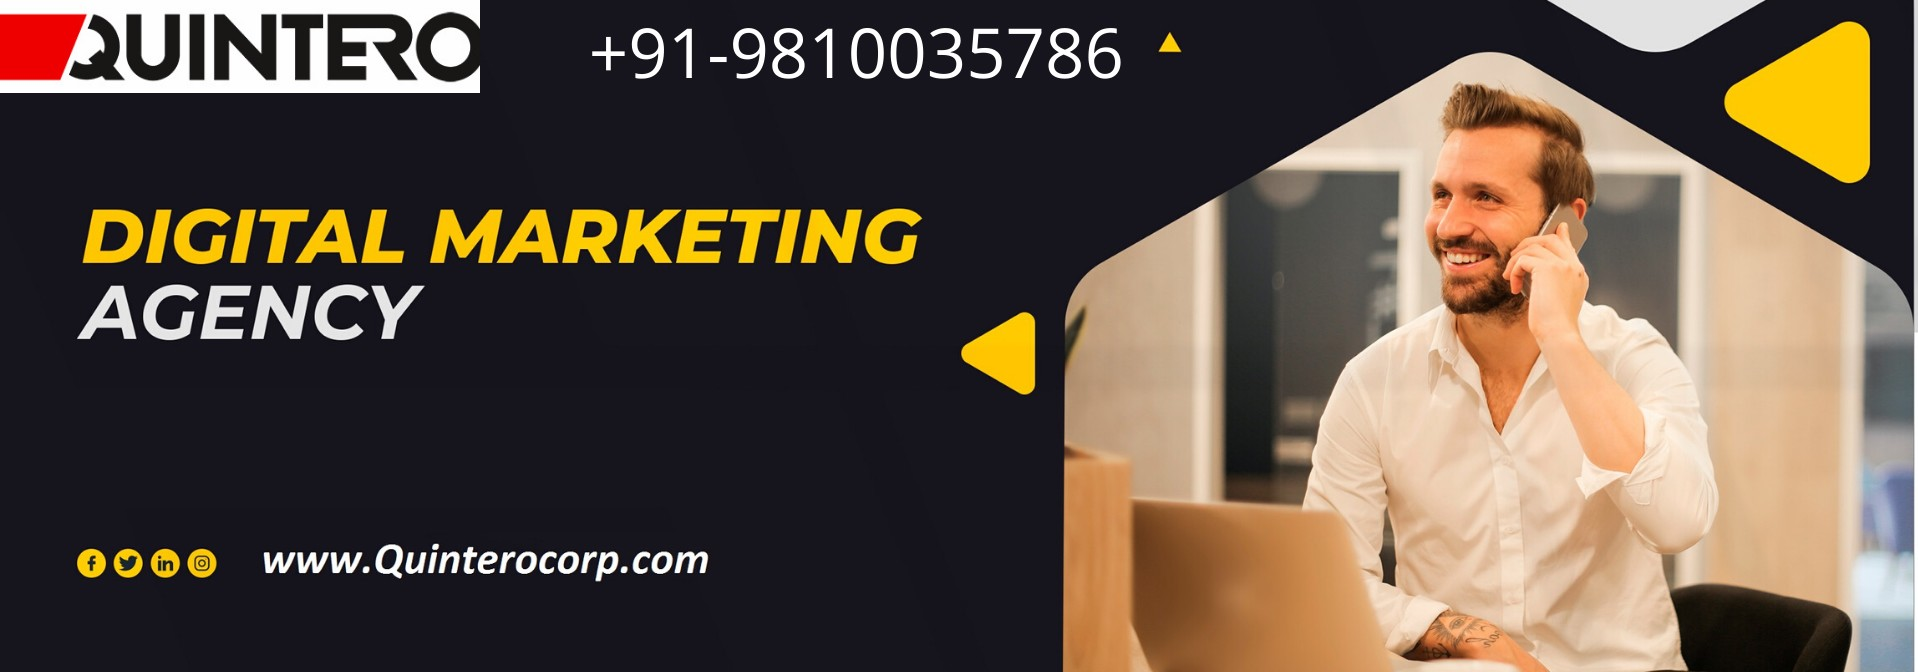 Get Best Digital Marketing Services in Delhi, India from Quintero Solutions